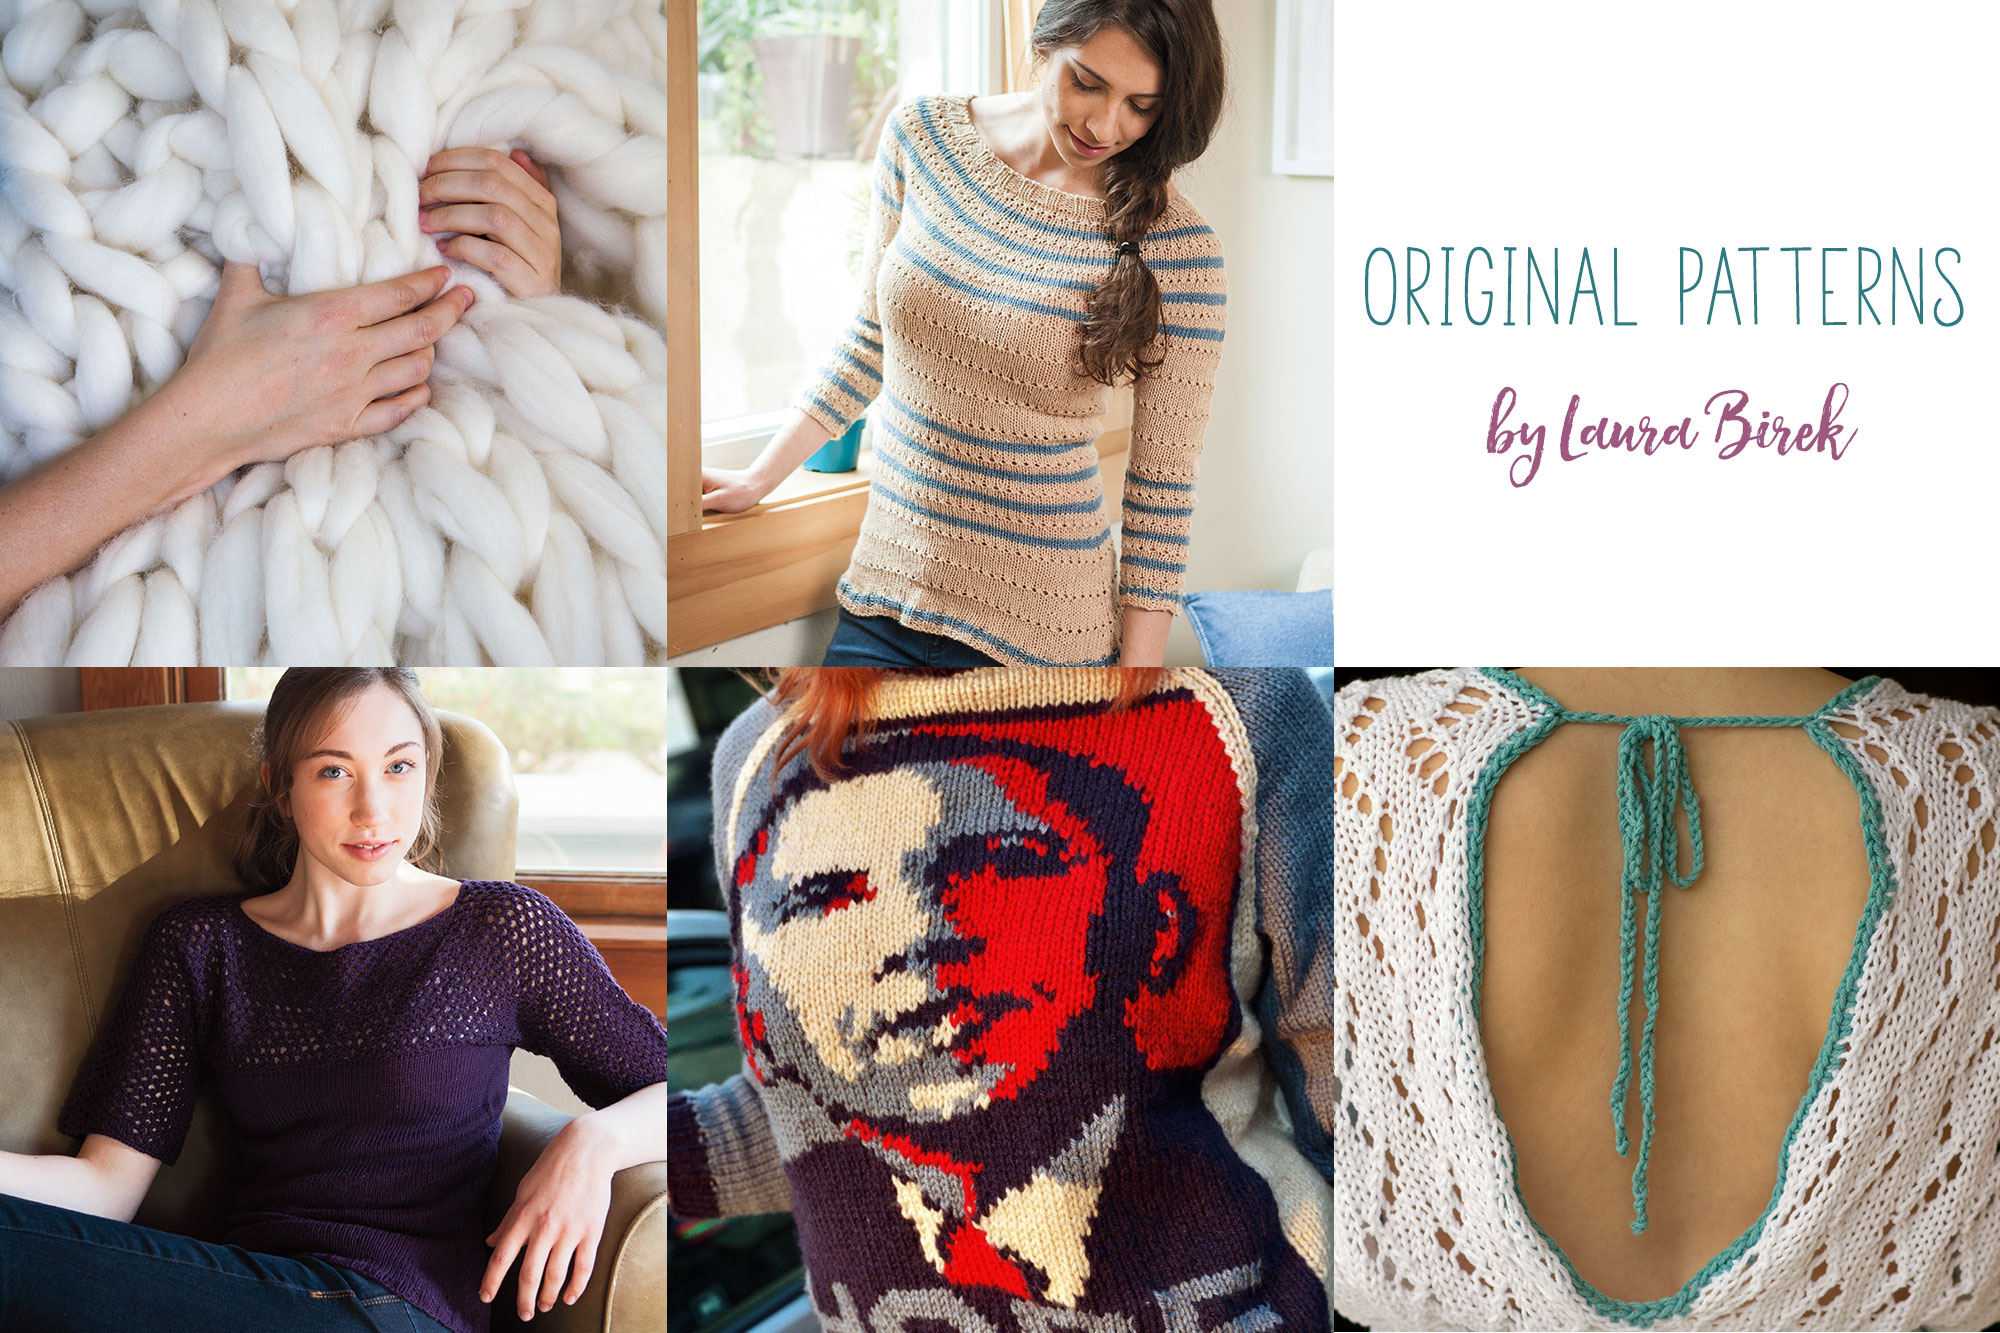 Original Patterns by Laura Birek